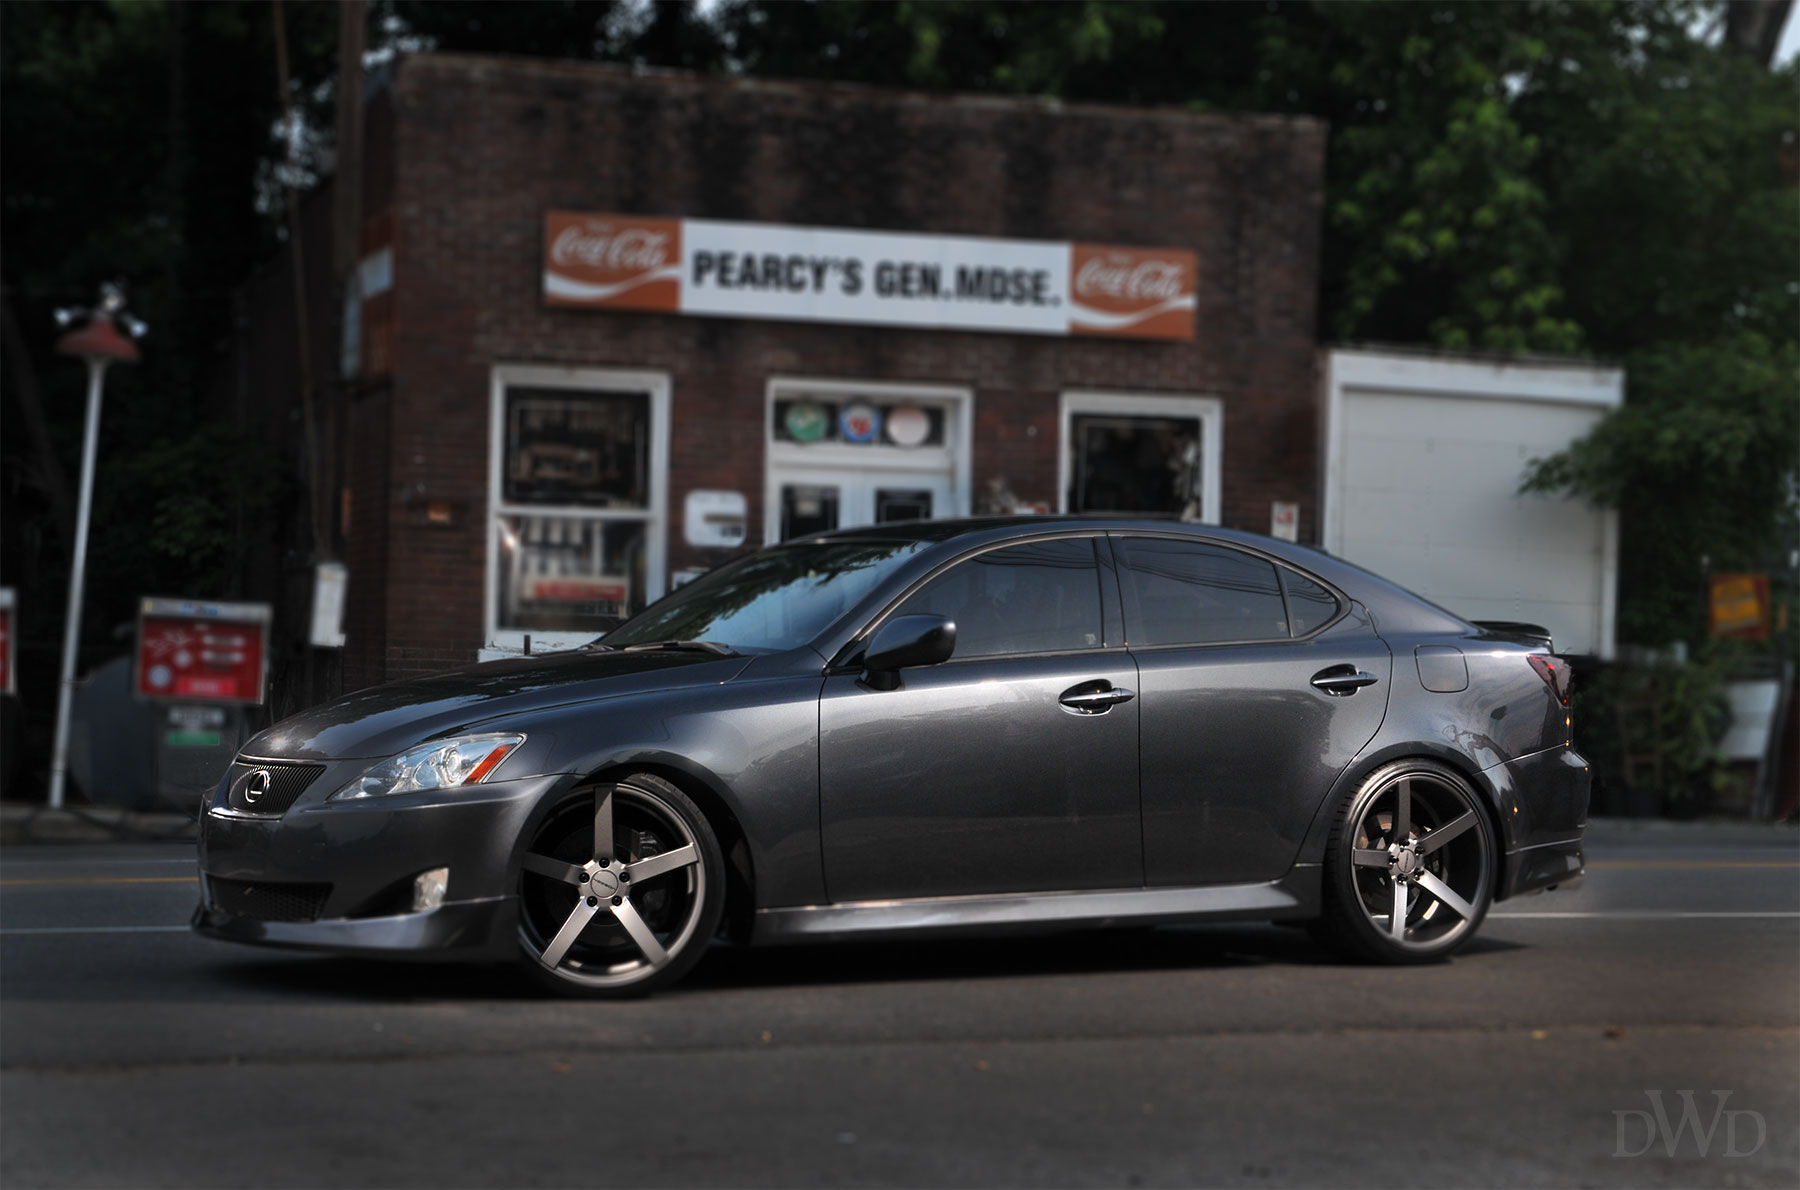 Image brought to you by Don Wright & Vossen Wheels